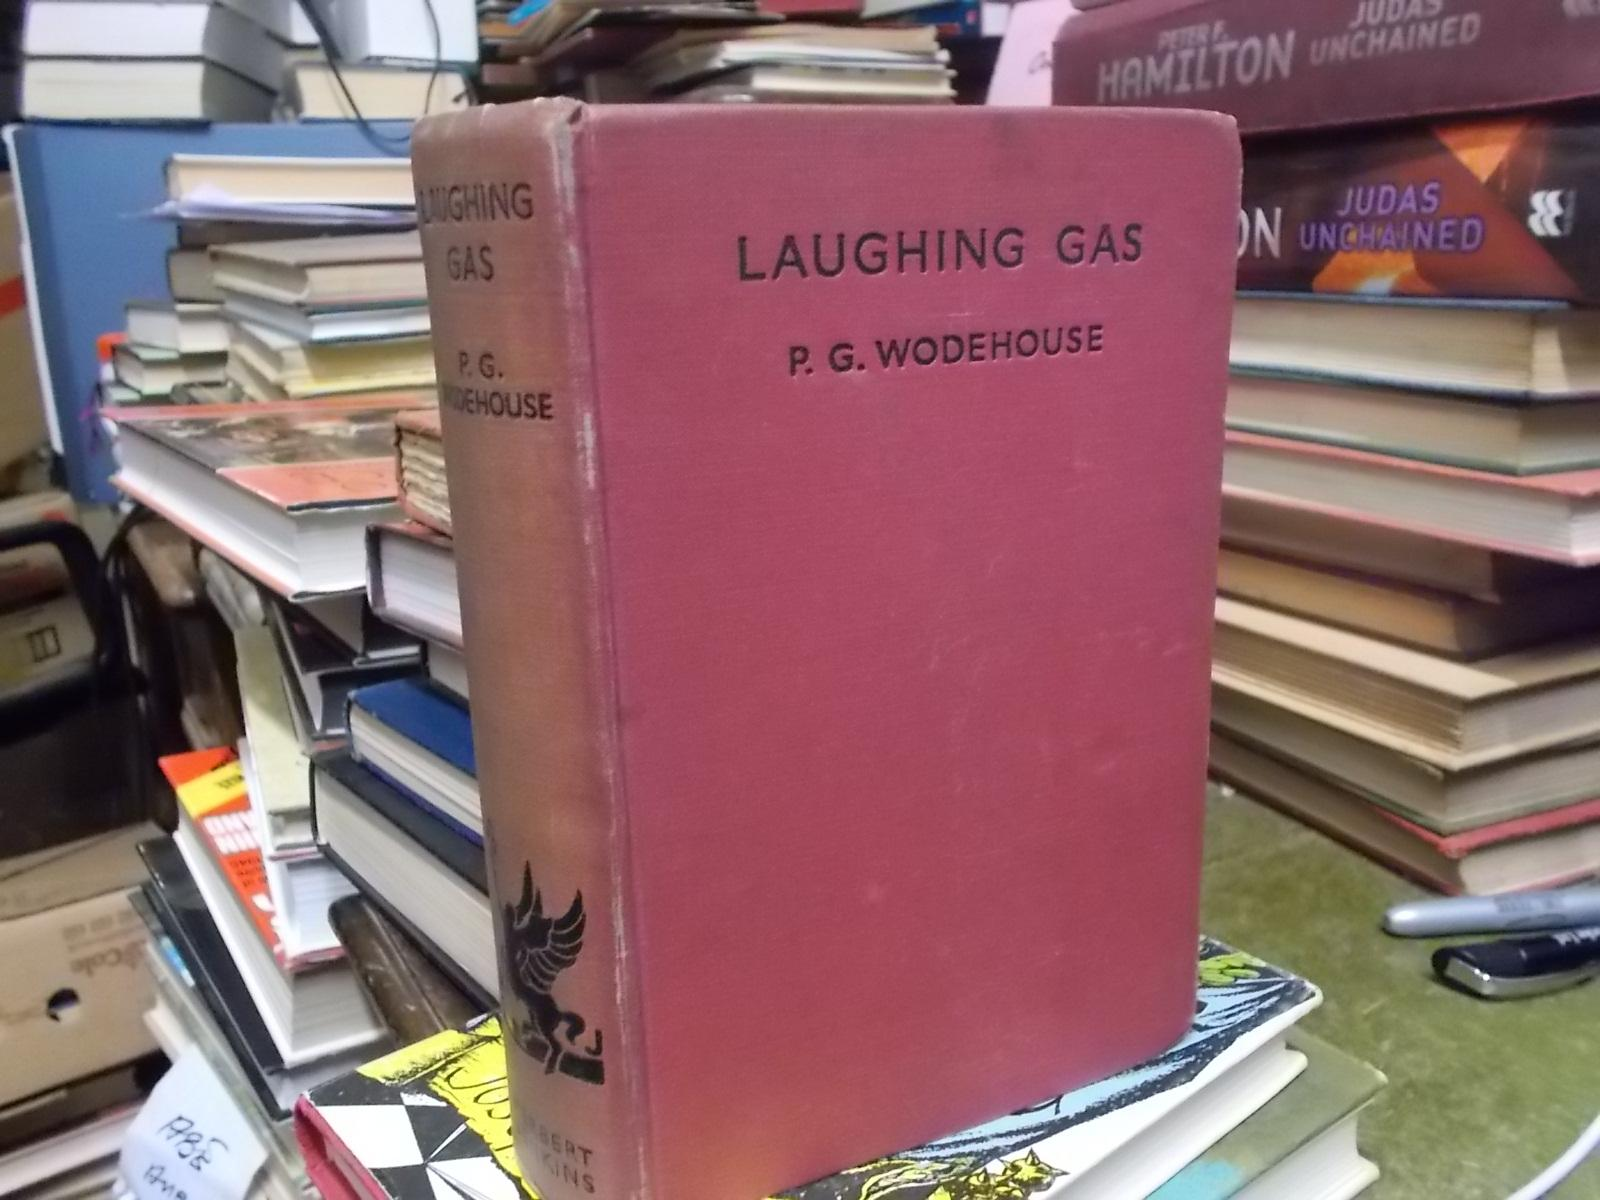 Laughing Gas Wodehouse, P.G. Good Hardcover internally clean copy. worn edges. brown faded end paper. Please see uploaded photos. For more information, please contact us.